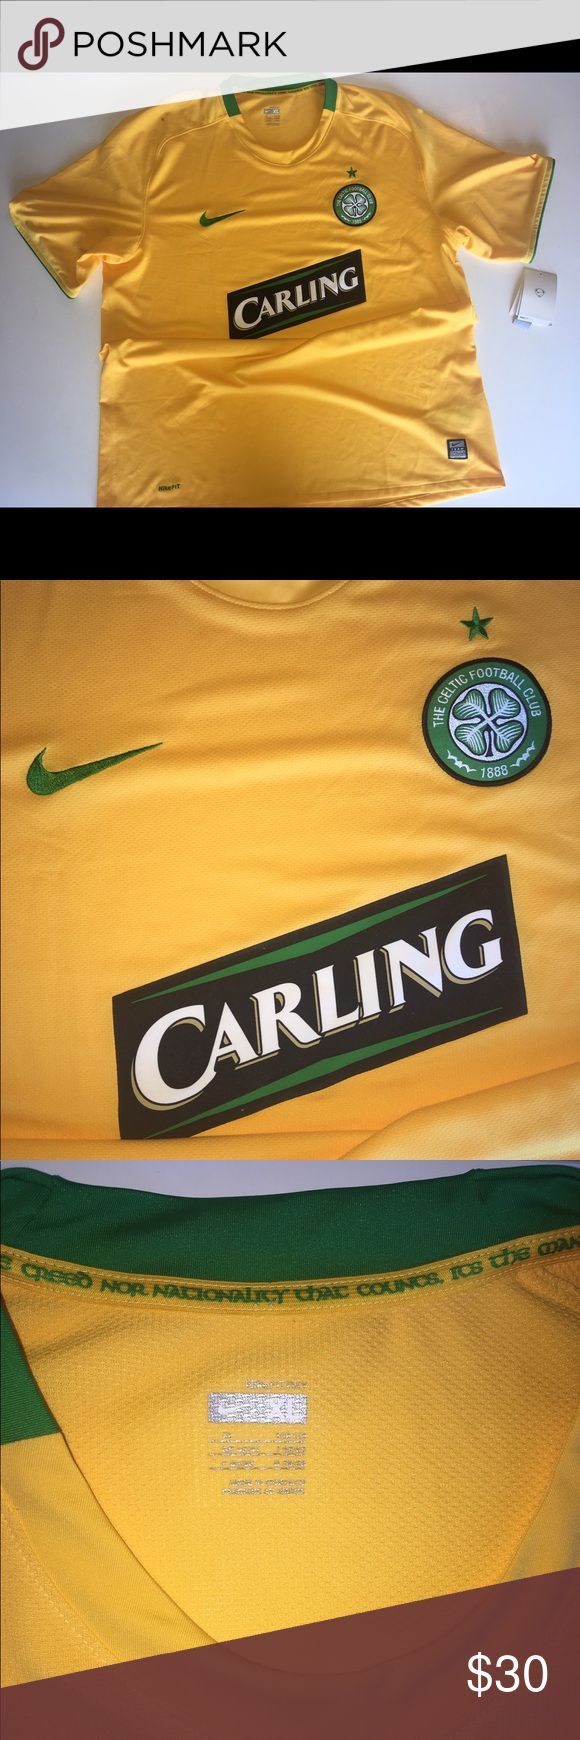 Nike Carling Celtic Soccer ⚽️Jersey size XL Nike Carling Celtic Soccer ⚽️Jersey size XL BRAND NEW!!! Has a small black mark on right shoulder which is pictured above. Nike Shirts